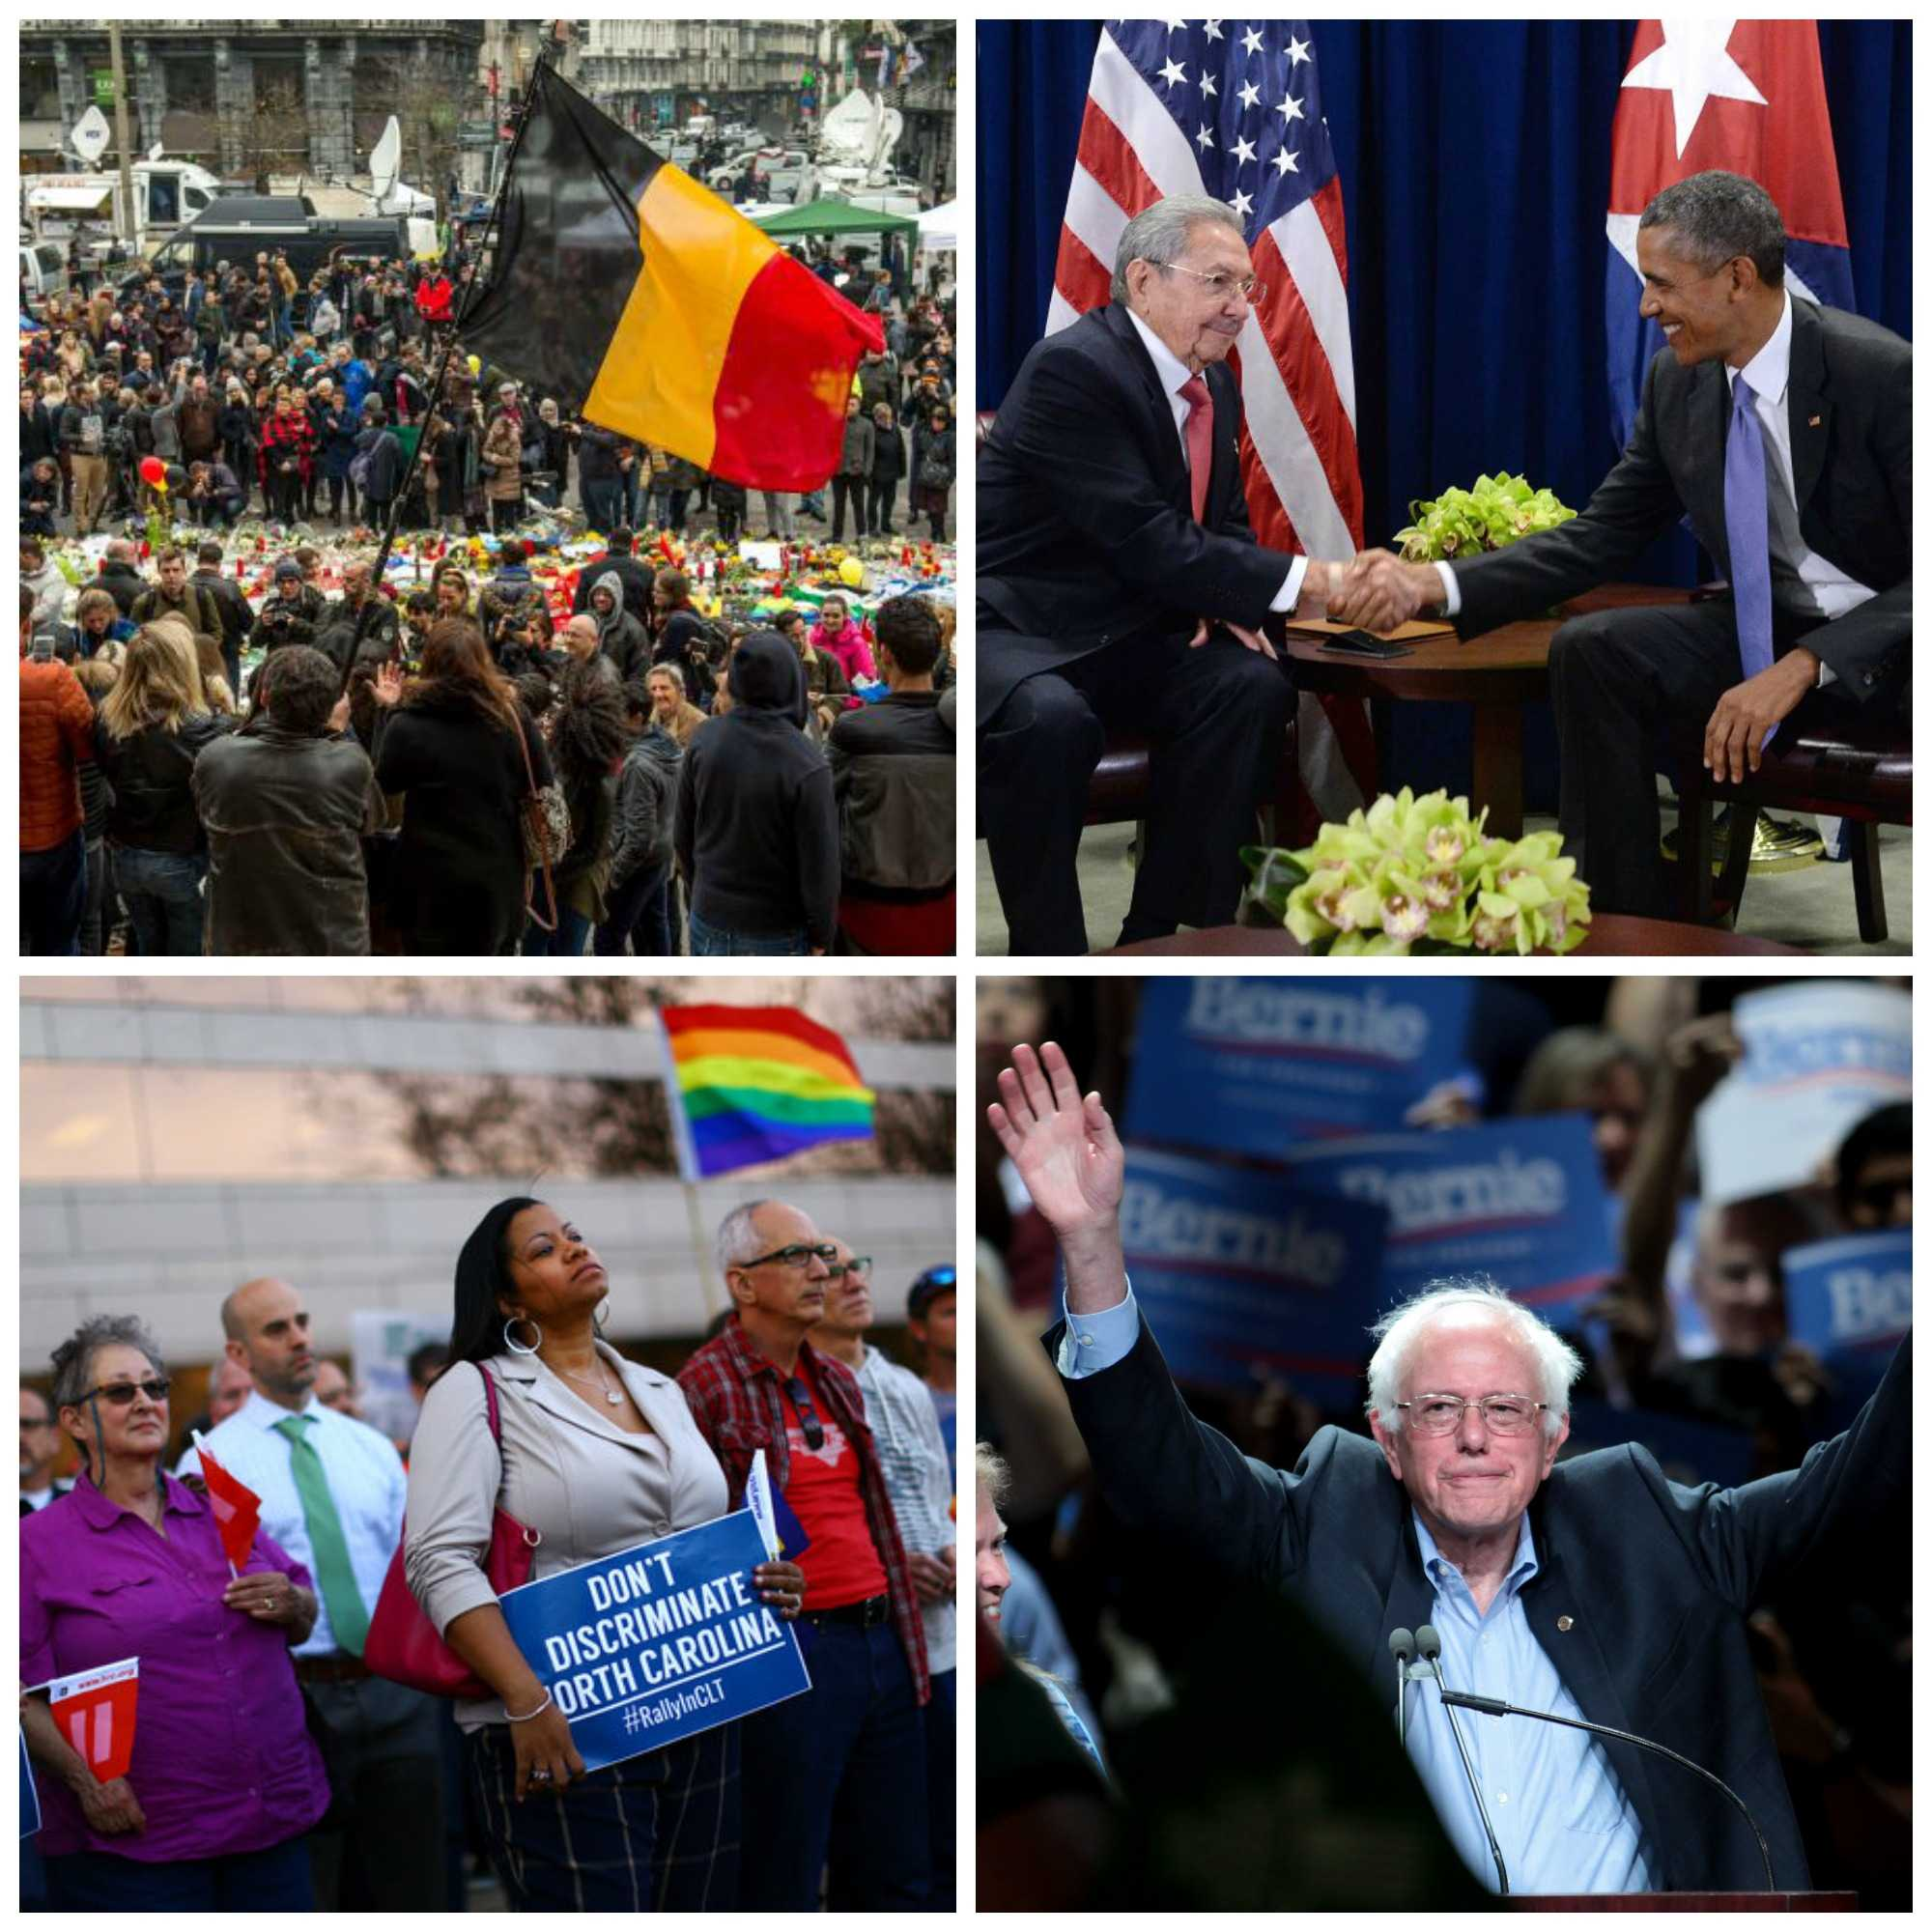 This week: Brussels attack, Obama in Cuba, North Carolina's controversial law and Sanders sweeps in